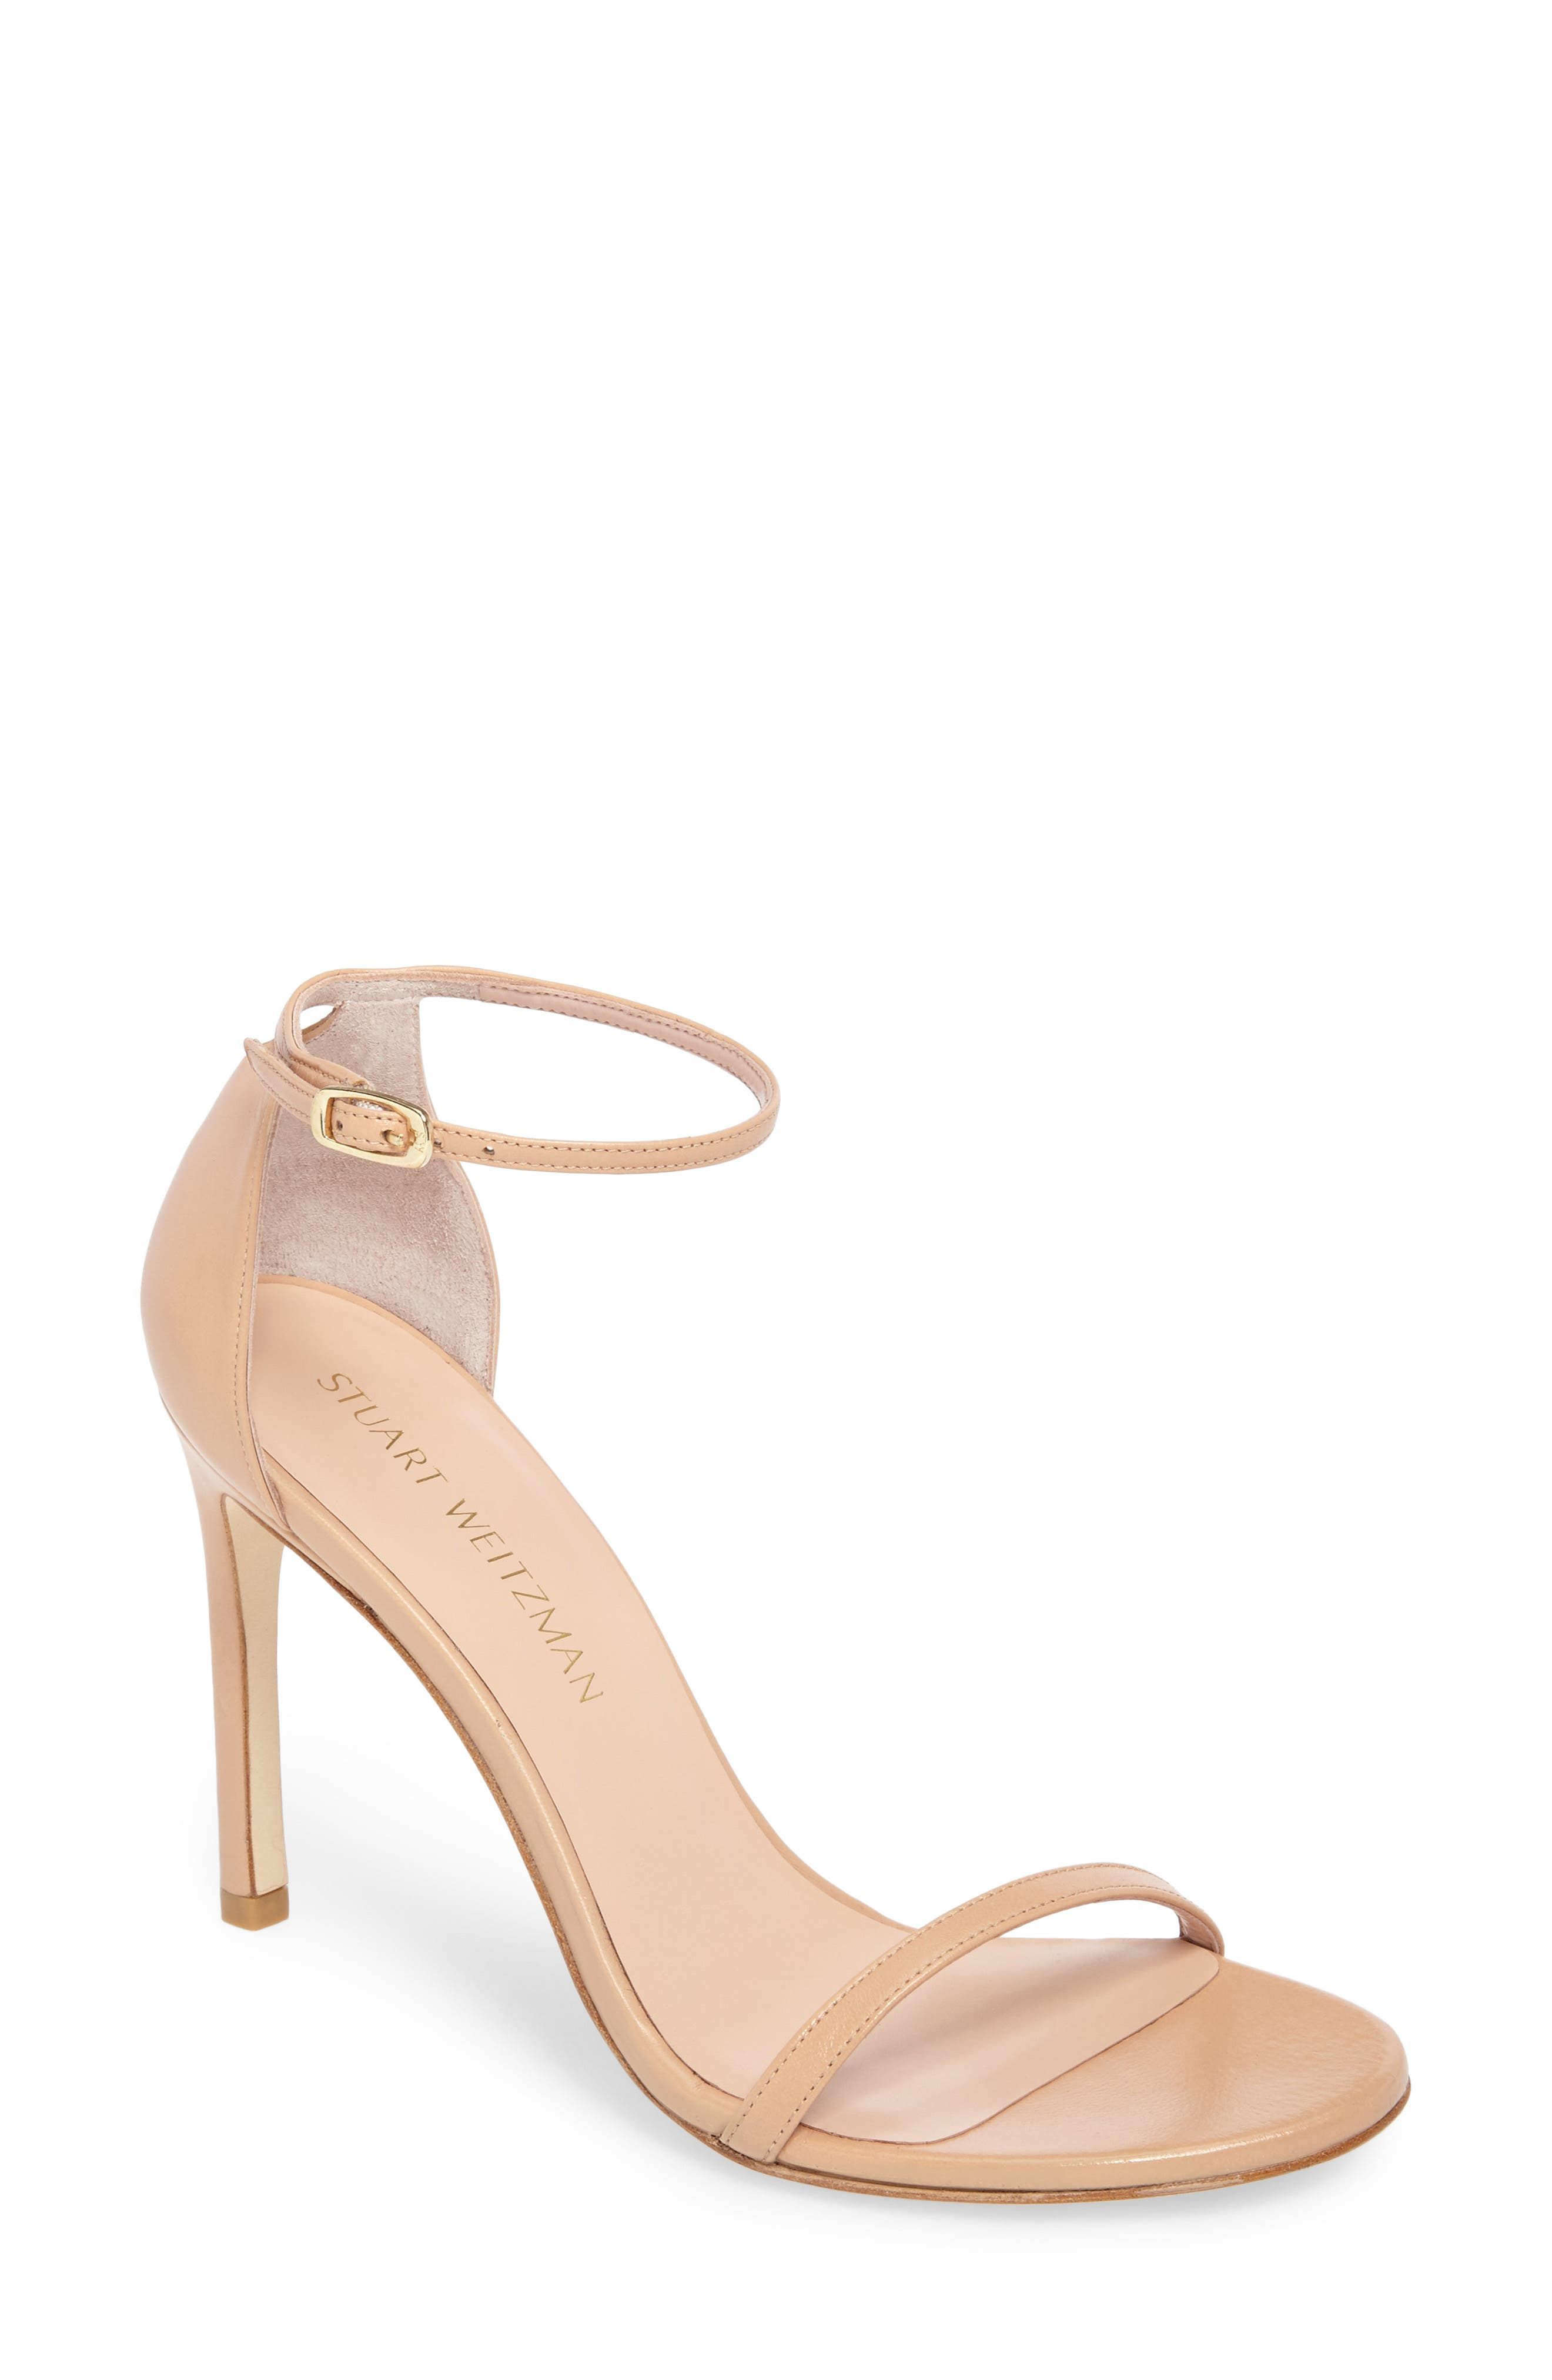 Nudistsong Ankle Strap Sandal,                             Main thumbnail 8, color,